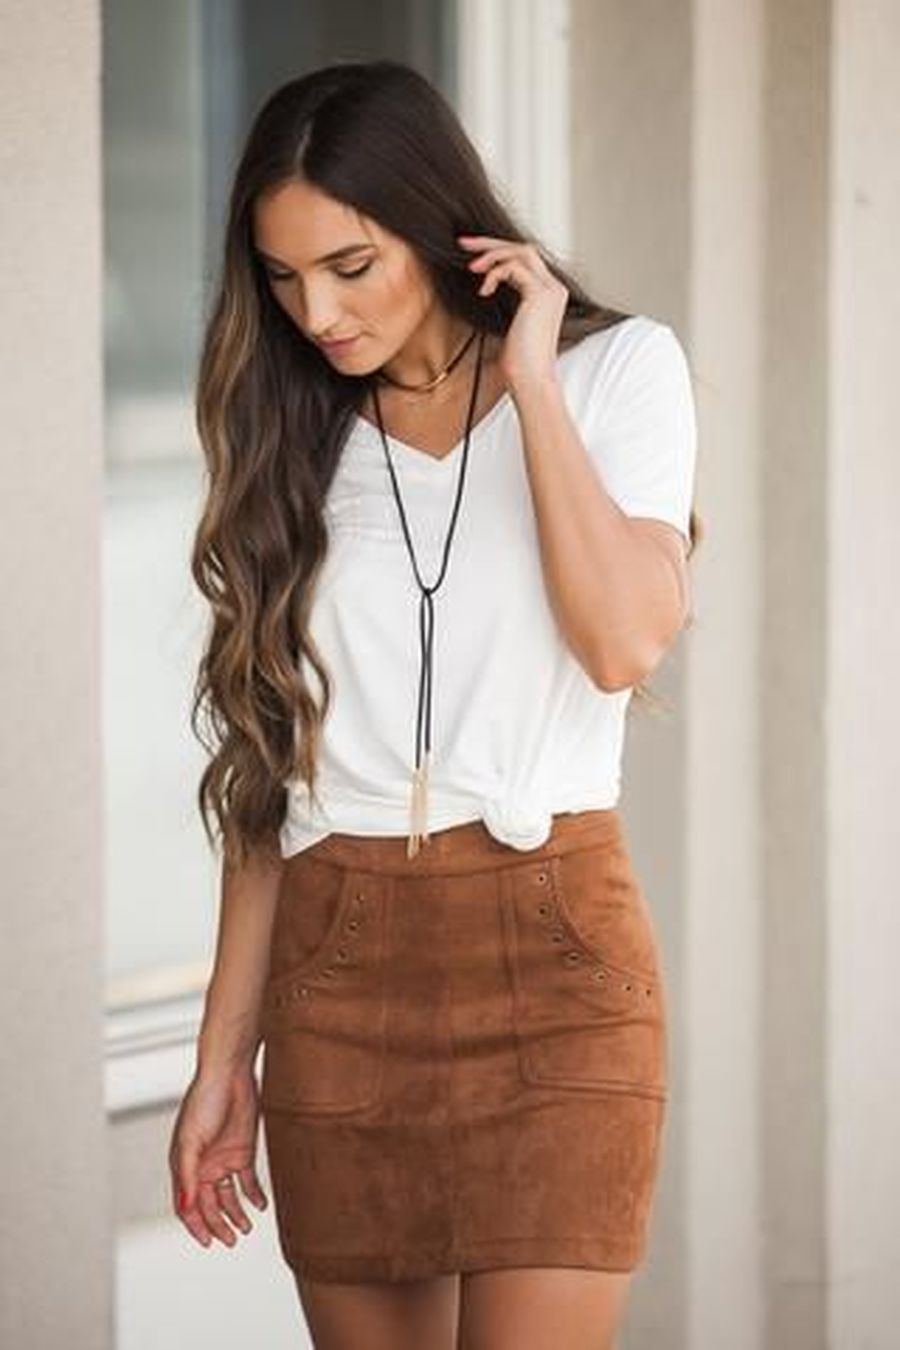 Skirt trends ideas for winter outfits this year 20